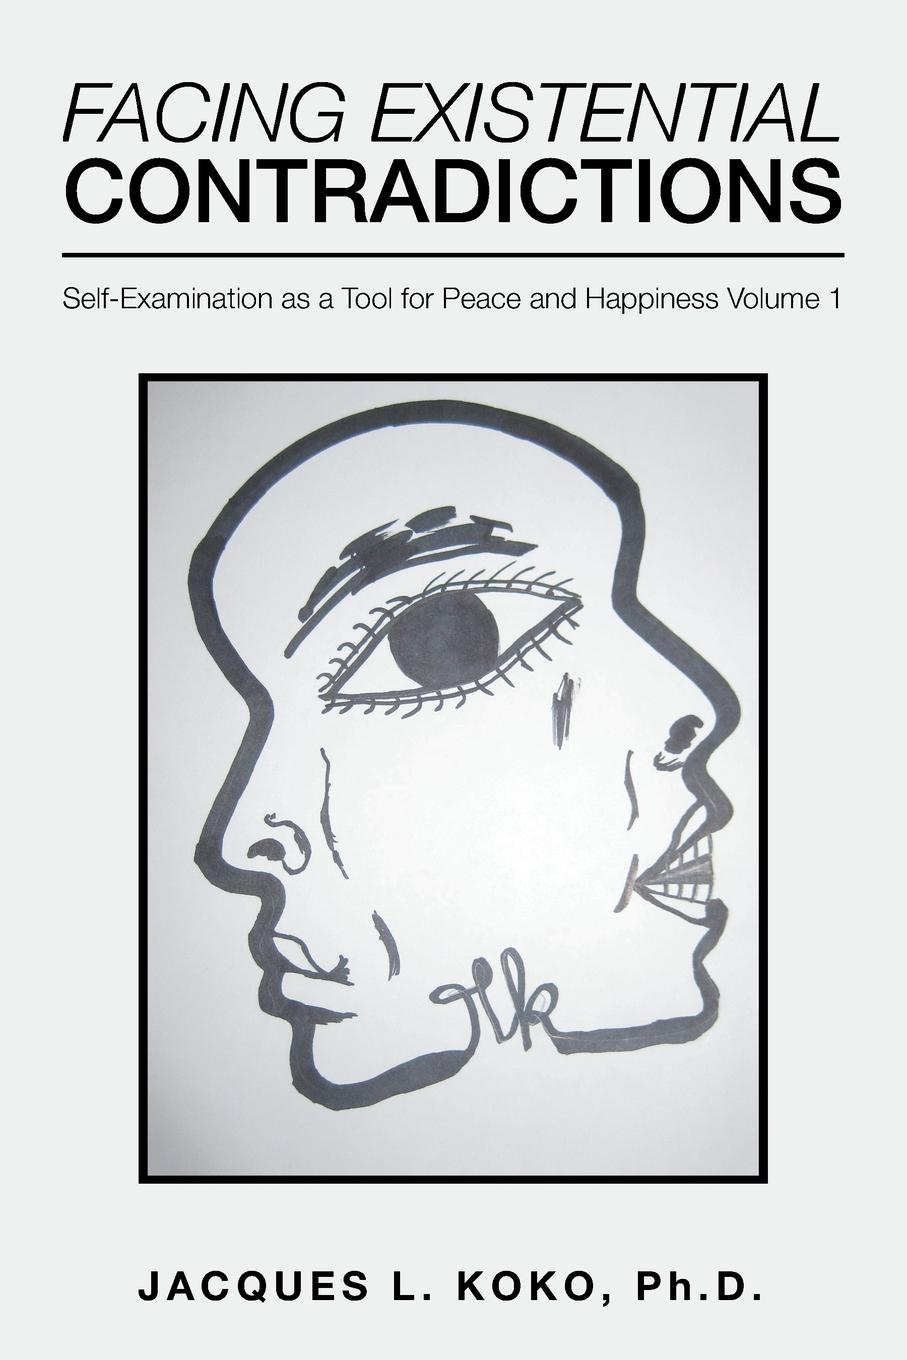 цена на Jacques L. Koko PhD Facing Existential Contradictions. Self-Examination as a Tool for Peace and Happiness Volume 1